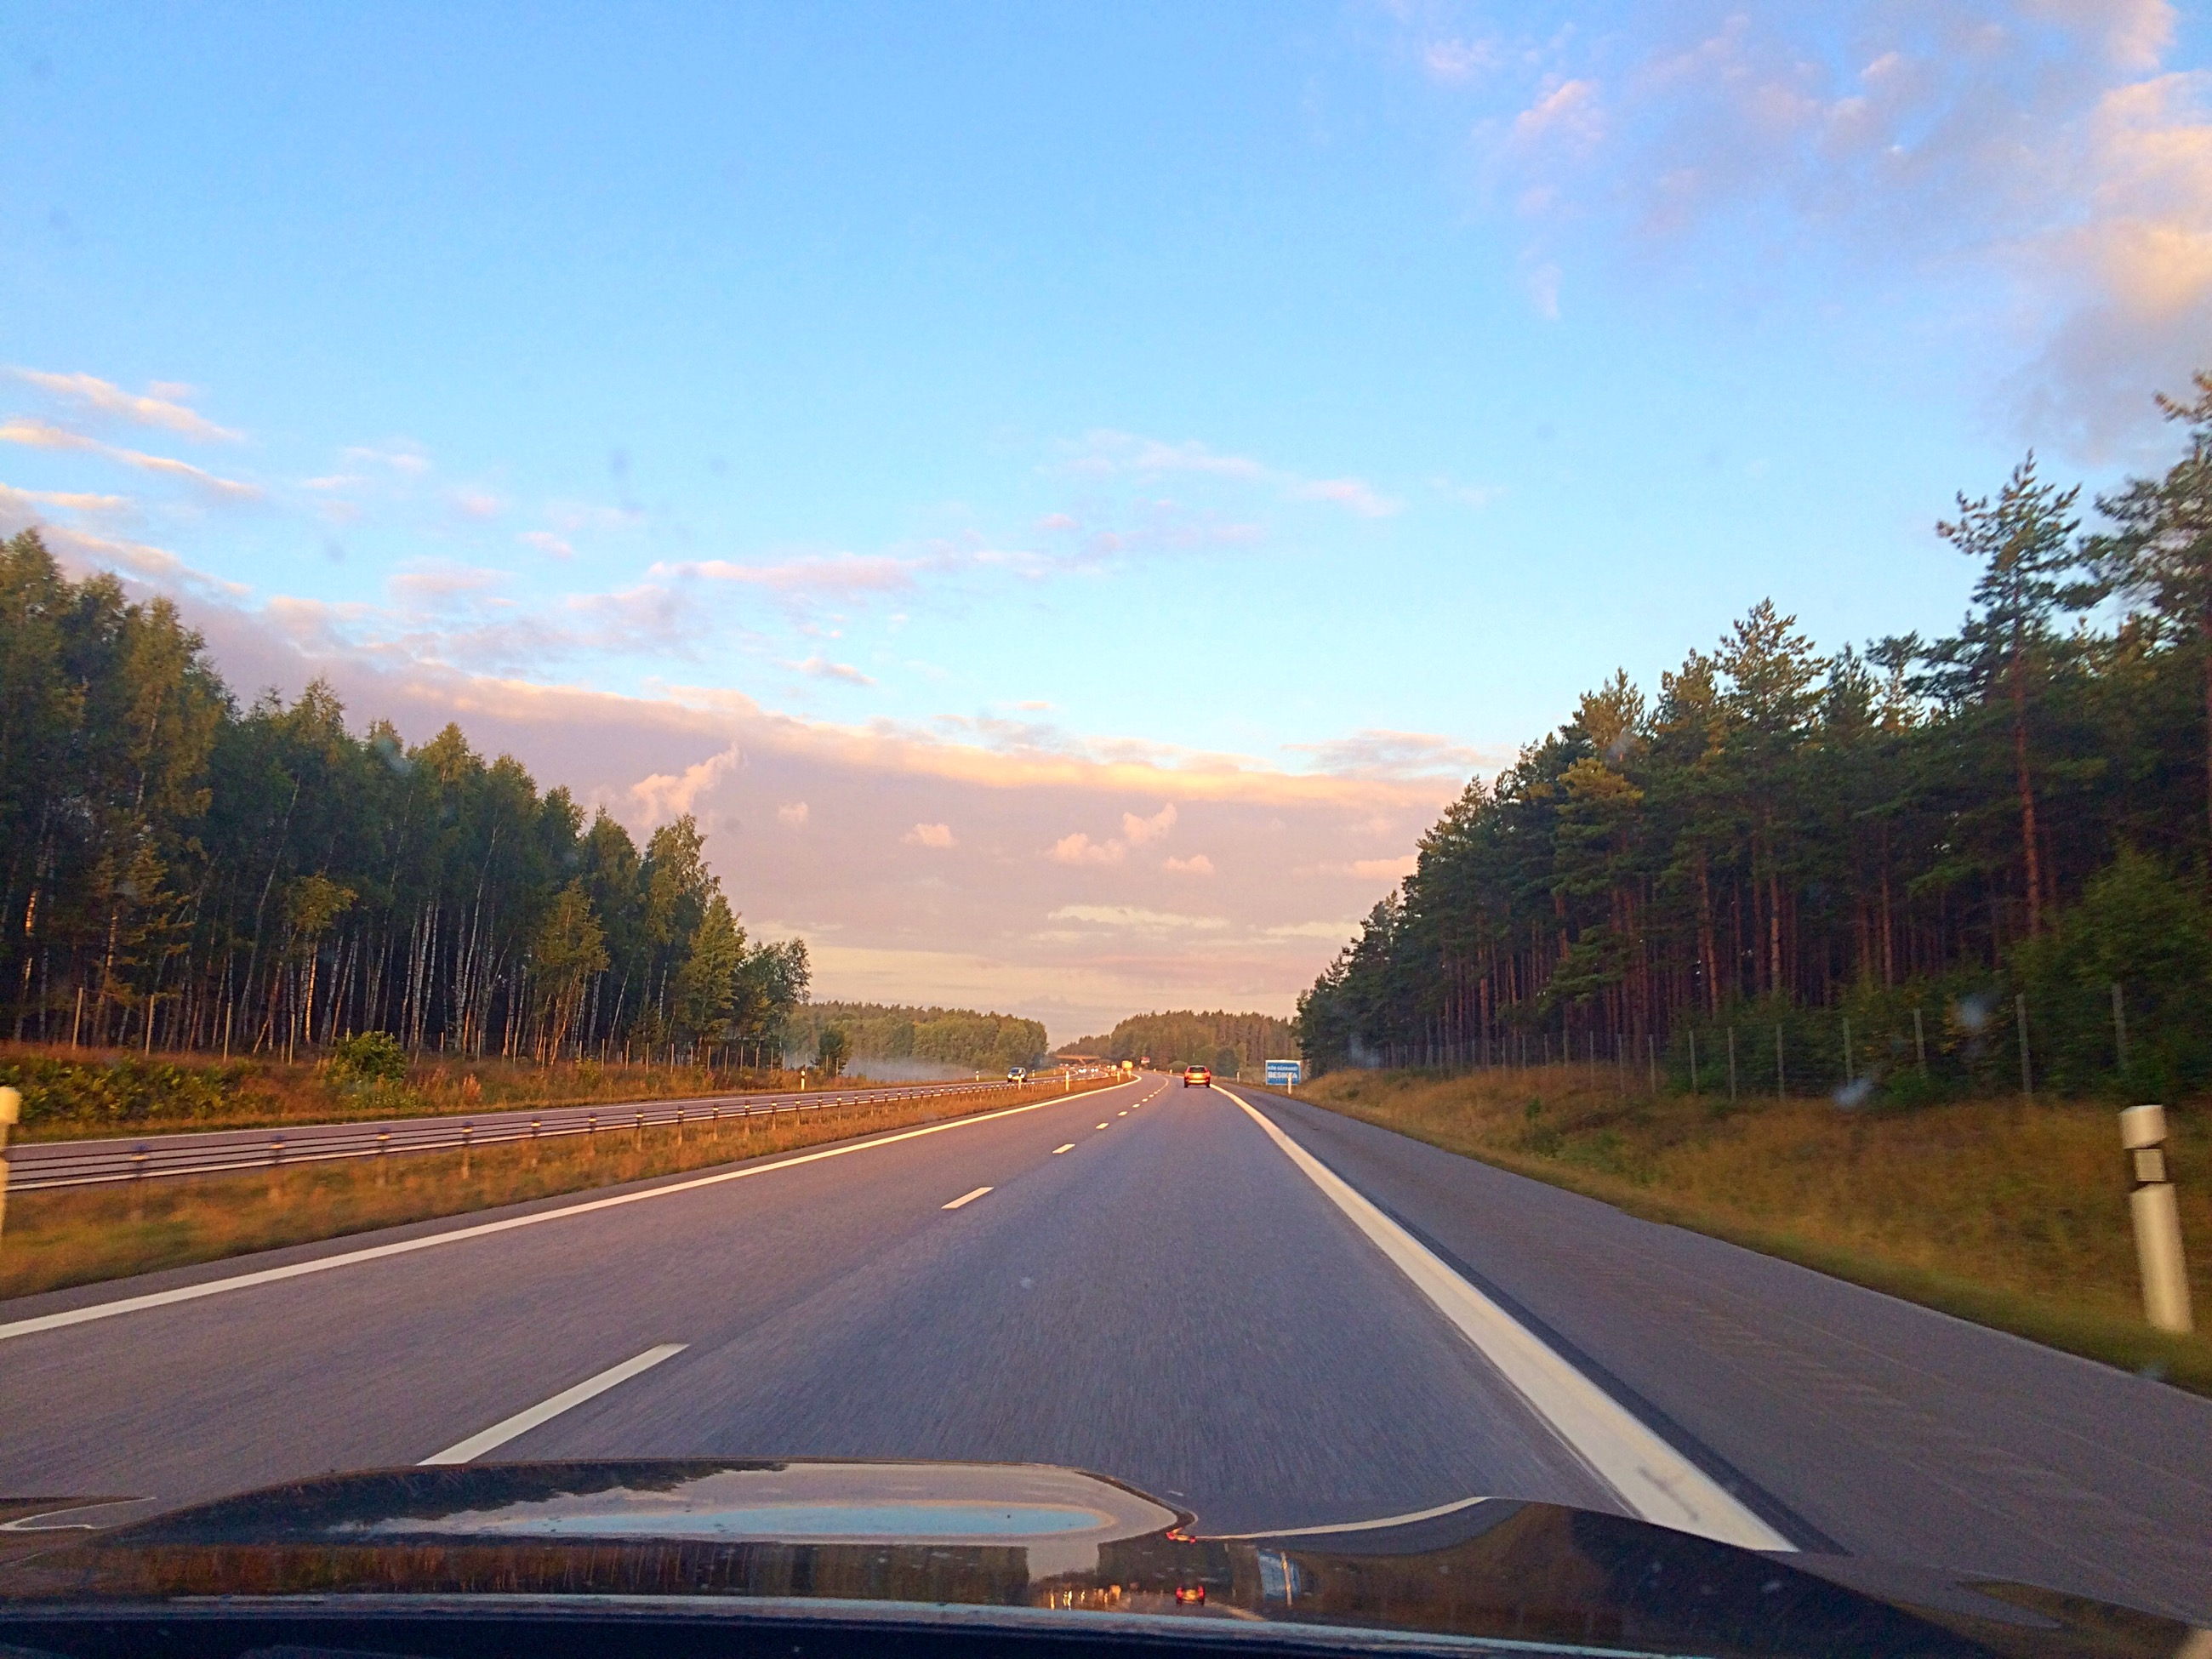 2016-08-22 Roadtrip till Ullared (2)